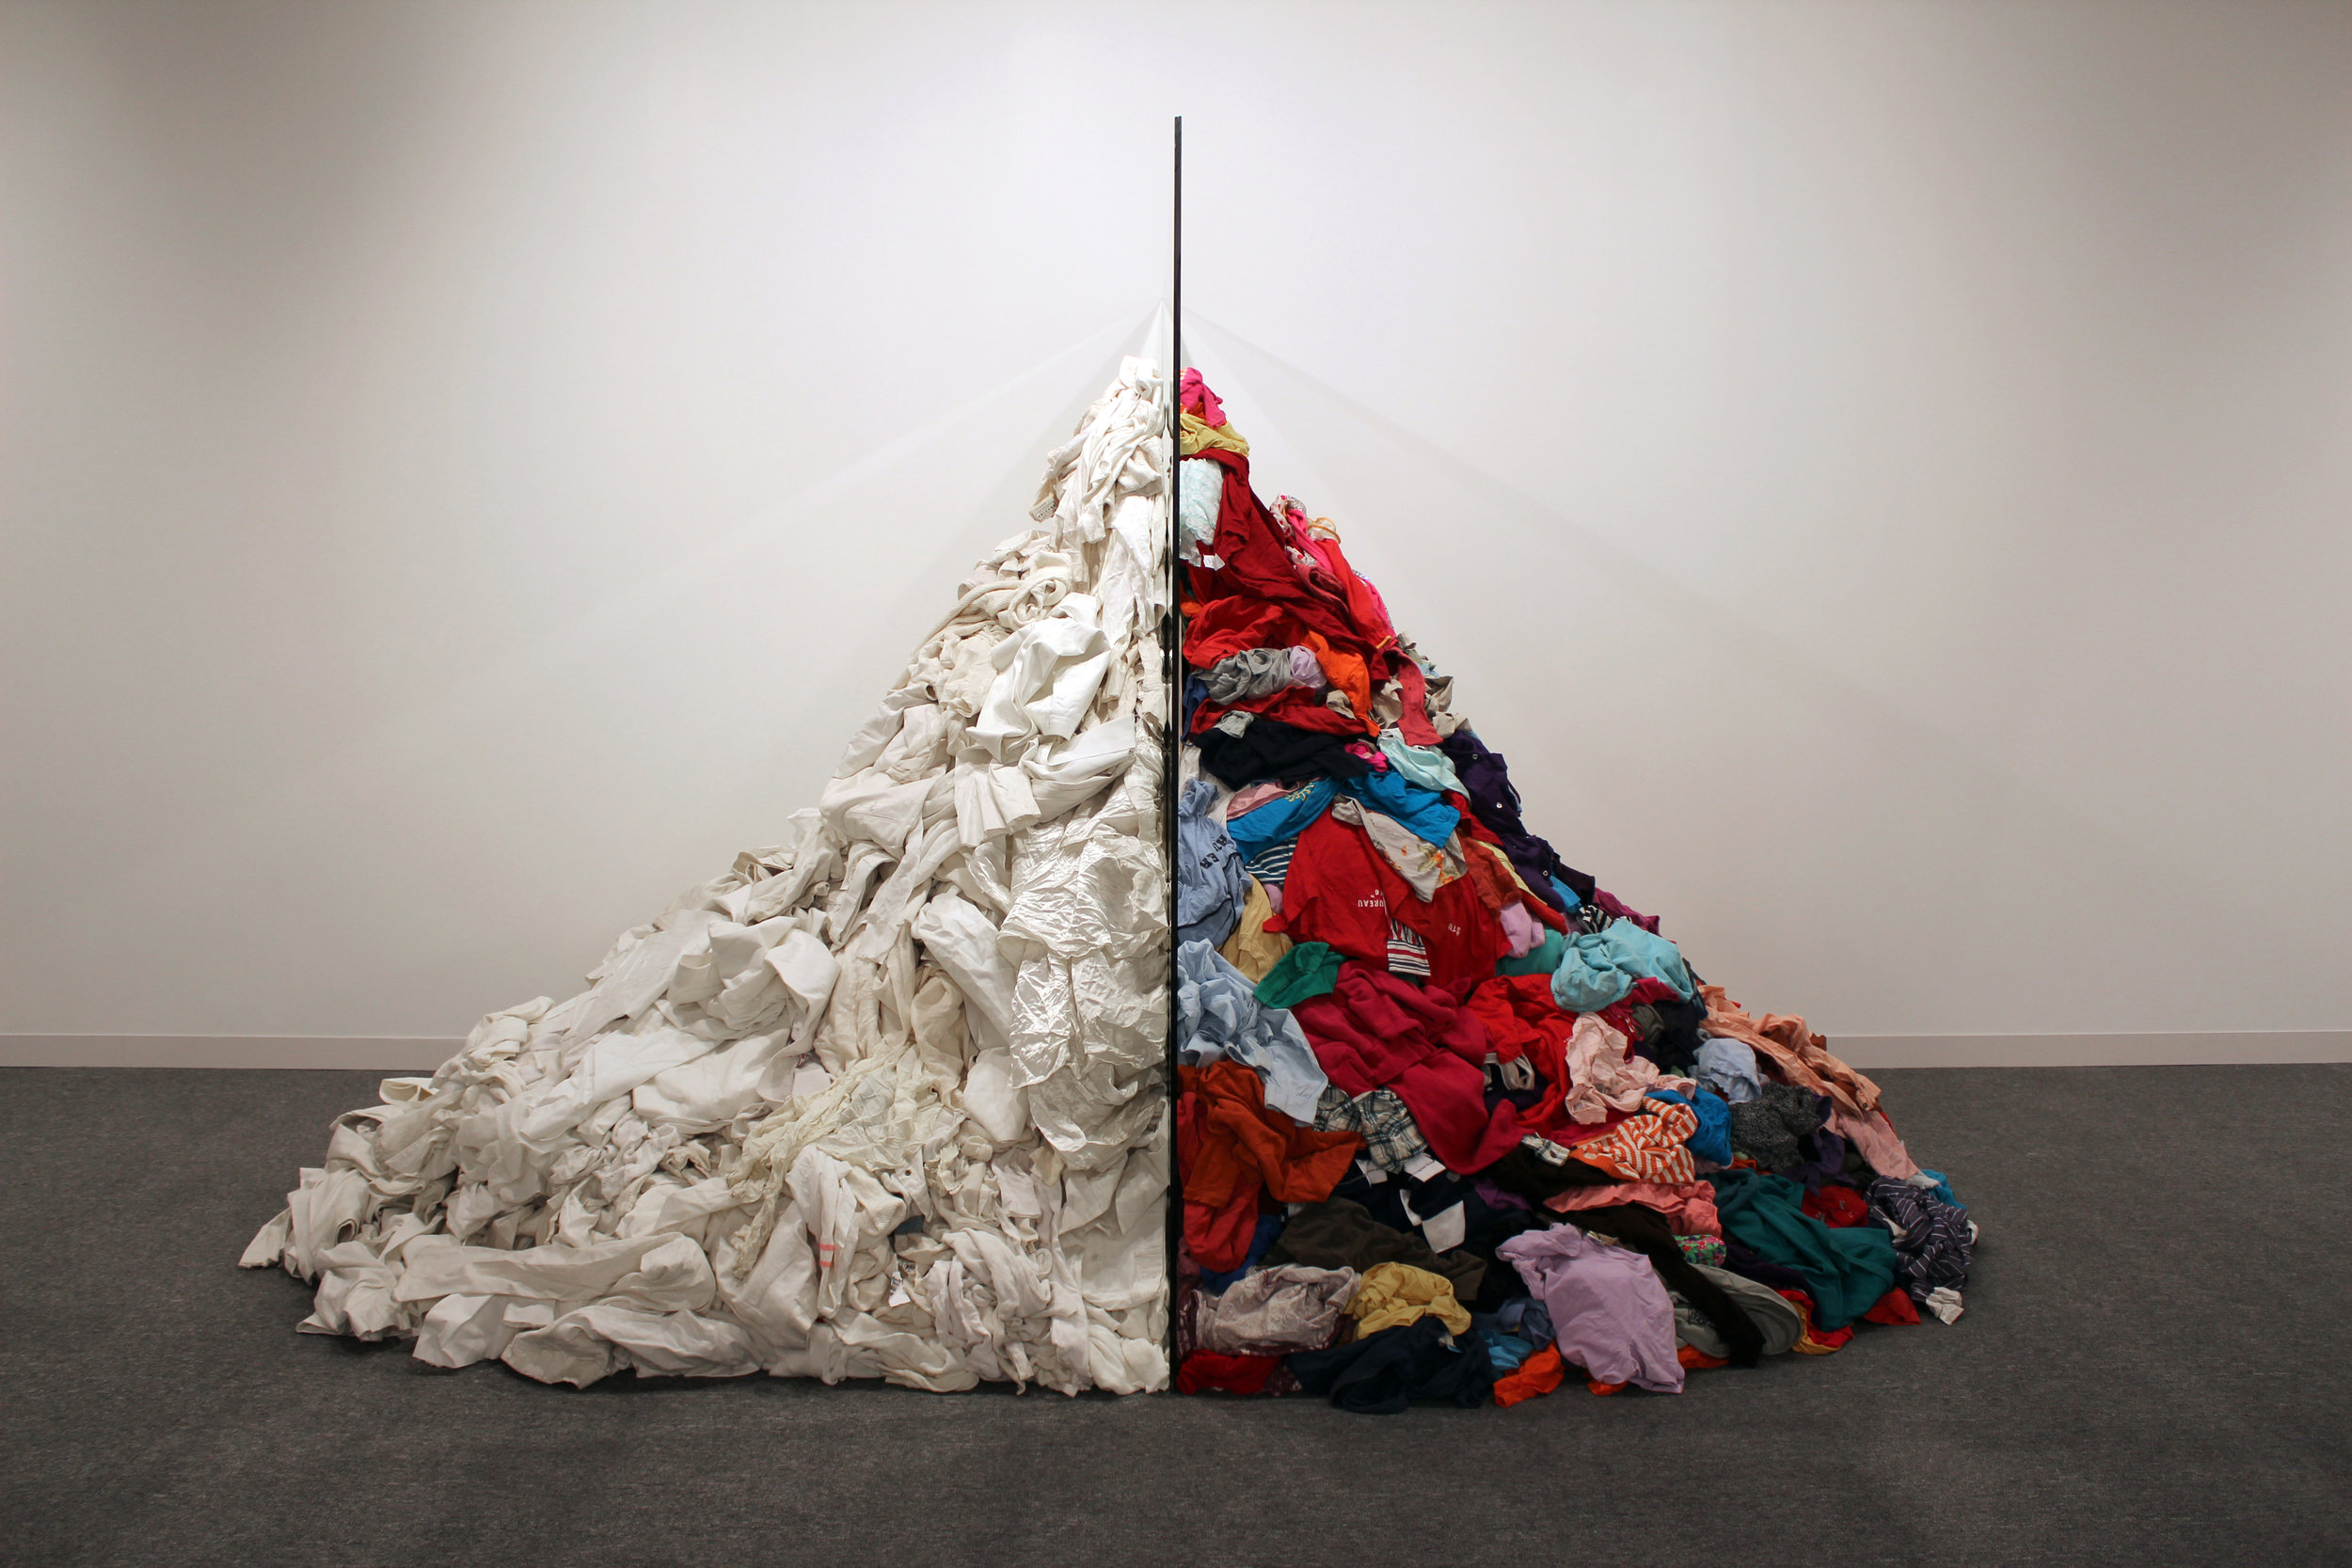 Michelangelo Pistoletto, Metamorfosi, 1976 - 2013  Abu Dhabi Art Fair  Credit photo: Alicia Luxem